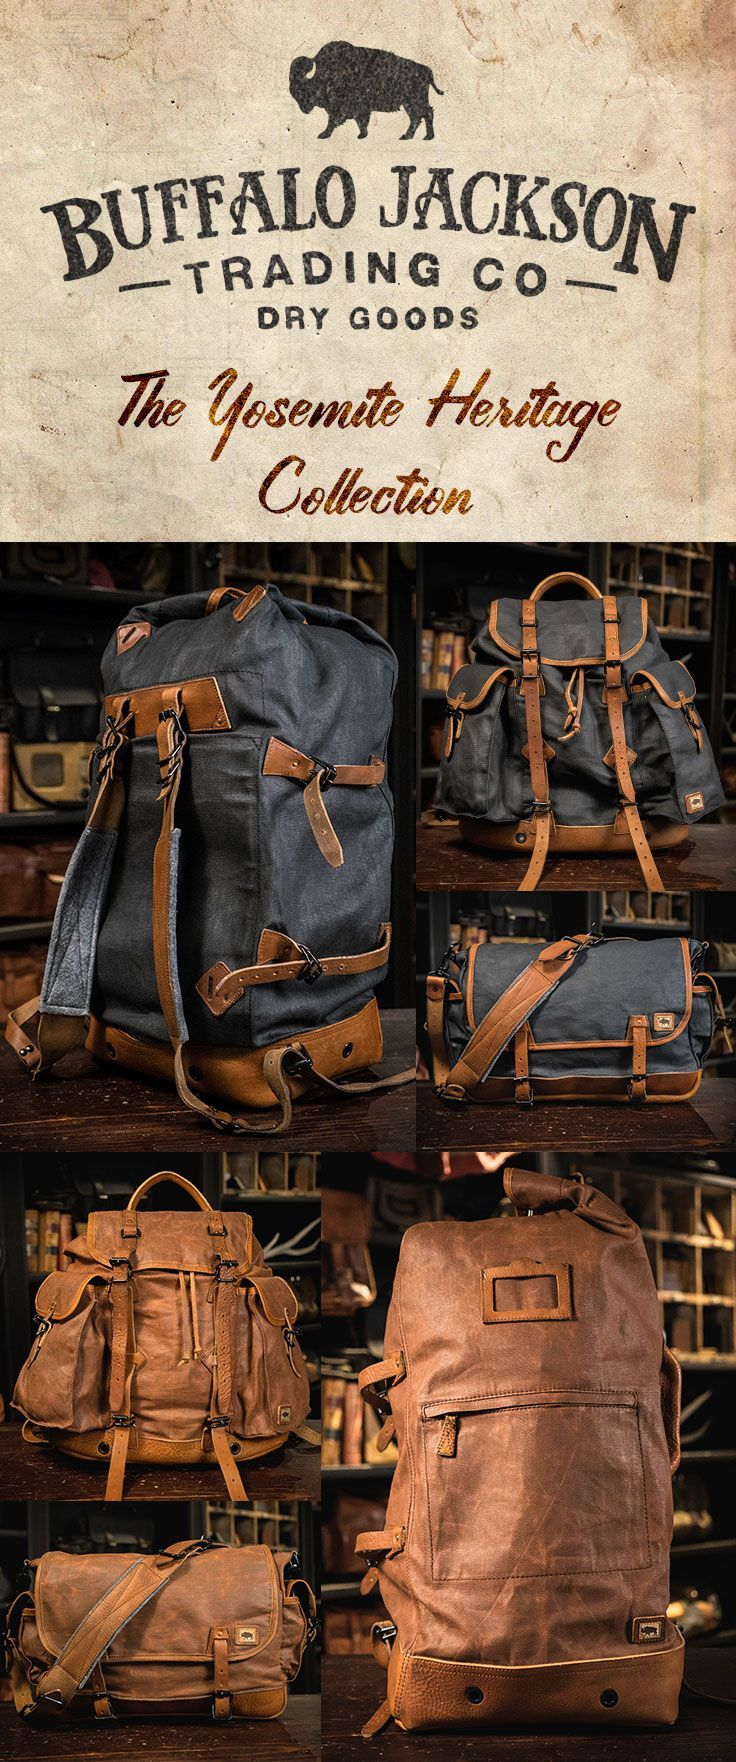 Crafted of waxed canvas and full grain leather with distressed vintage finish, these bags were built to honor the memory of good men and good days. One of the best gifts for him this Christmas - or any time of year. vintage military duffle backpack   vintage military rucksack   vintage military messenger bag